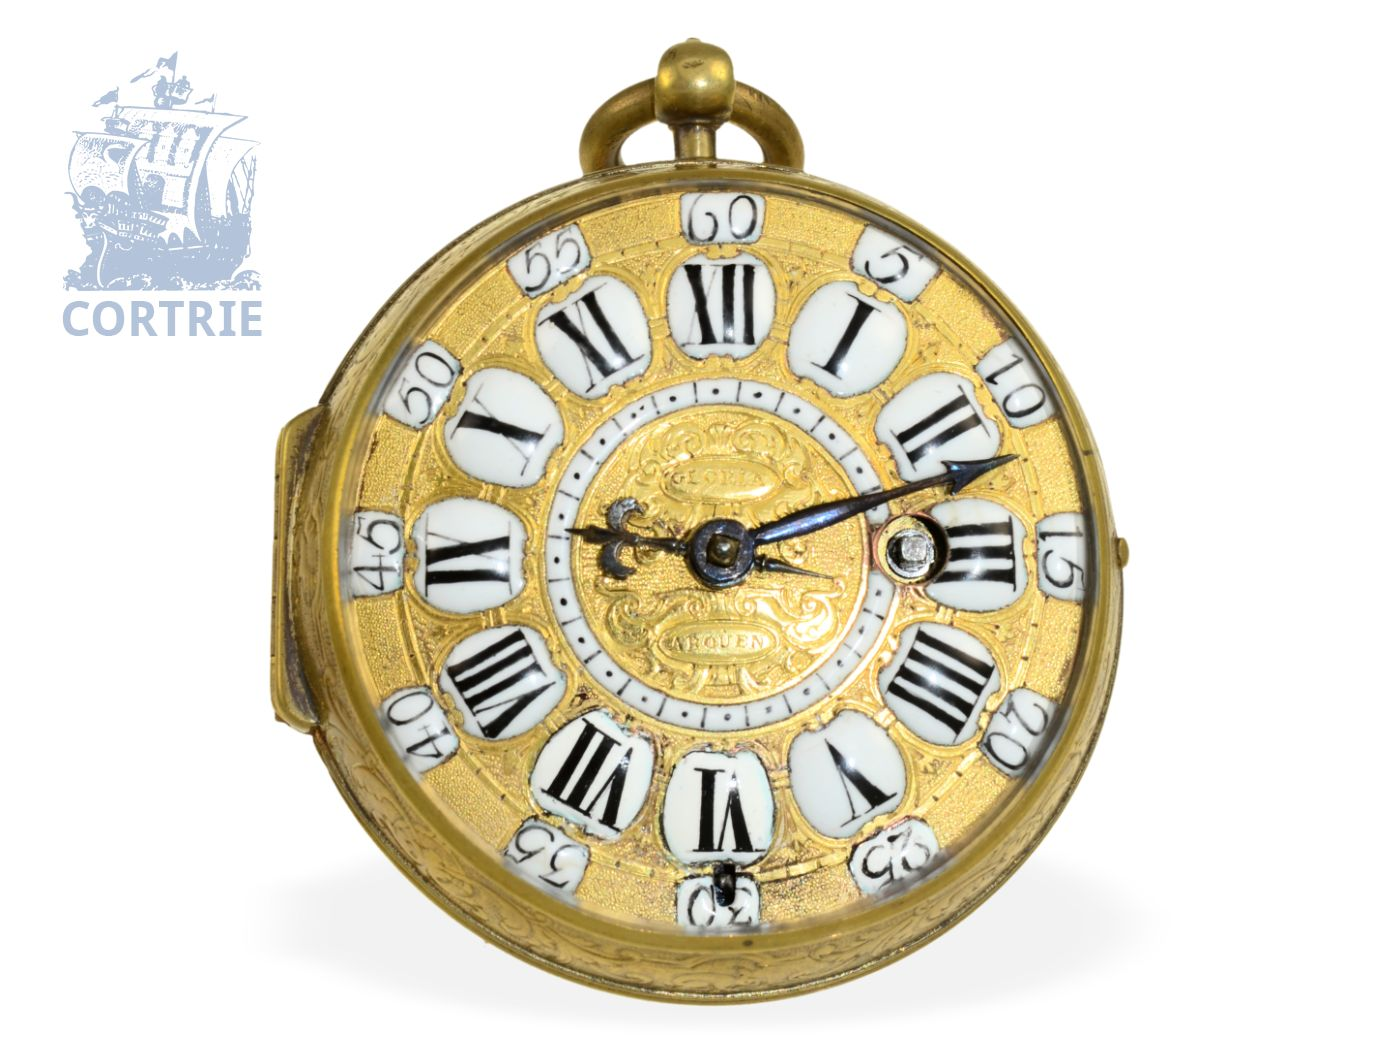 Pocket watch: very beautiful Oignon verge watch ca. 1720, Jacques Gloria à Rouen noted since 1696-